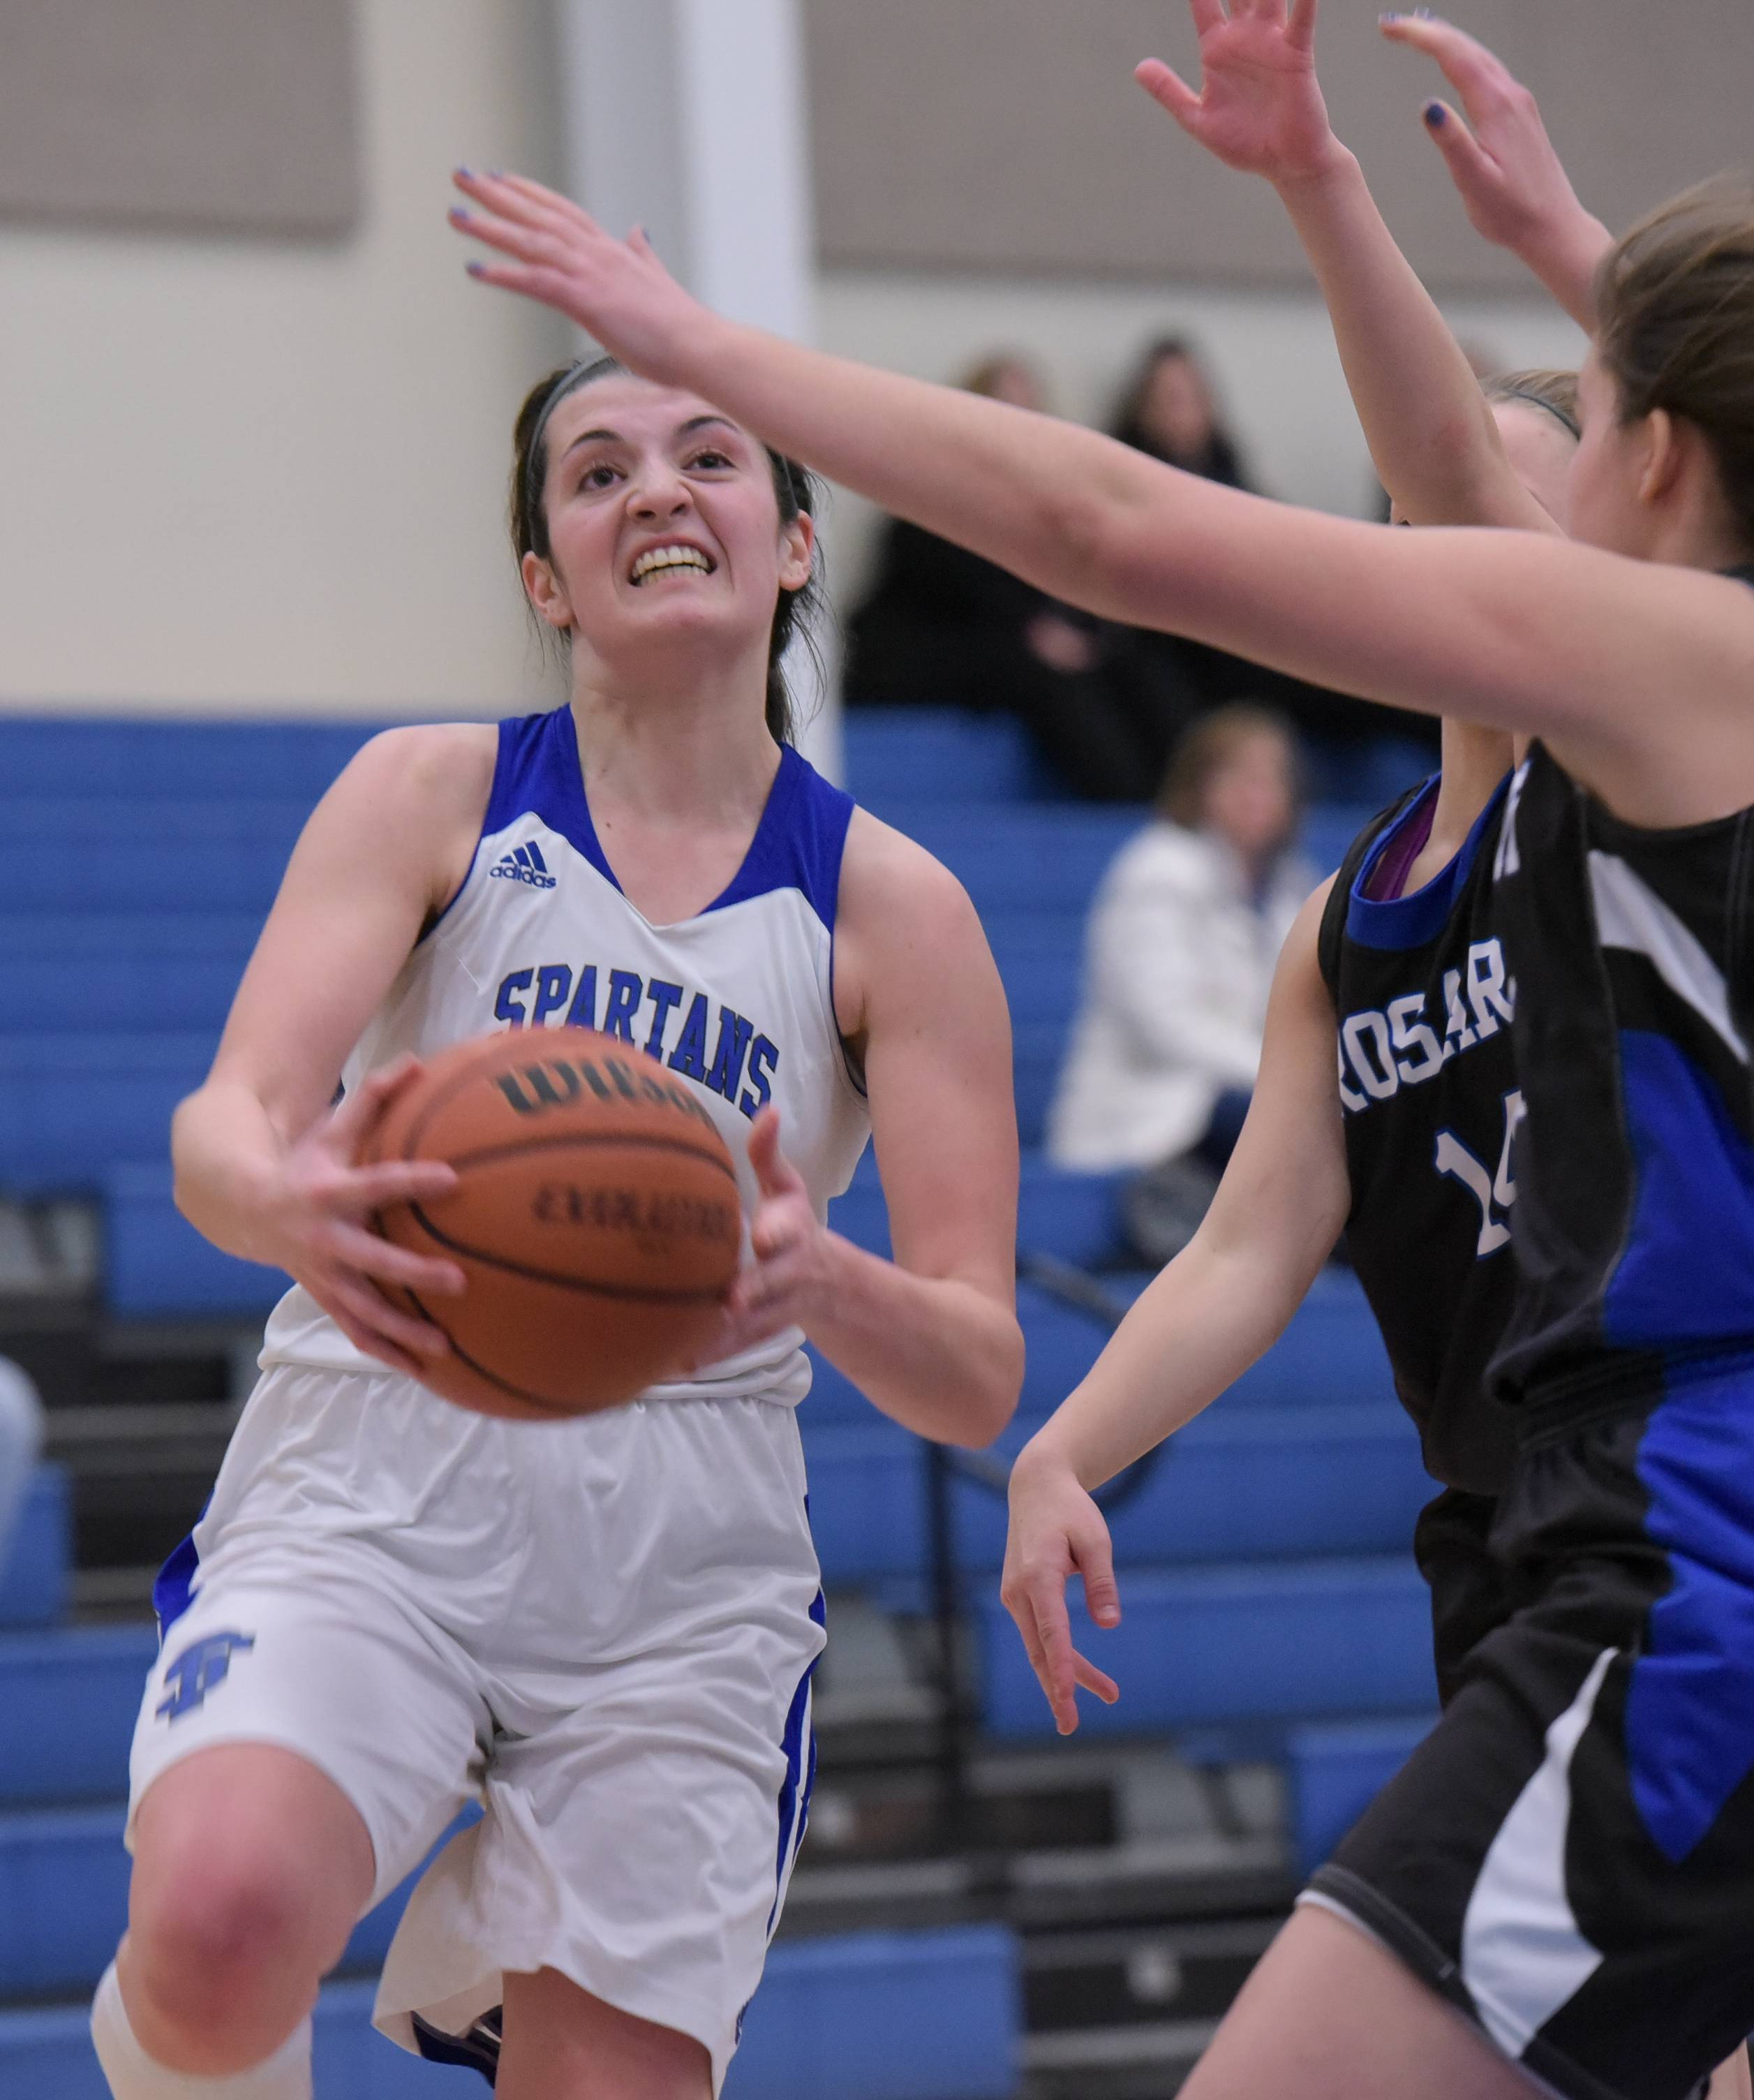 St. Francis' Mia Mazza drives to the basket against Rosary during varsity girls basketball in Wheaton Tuesday.